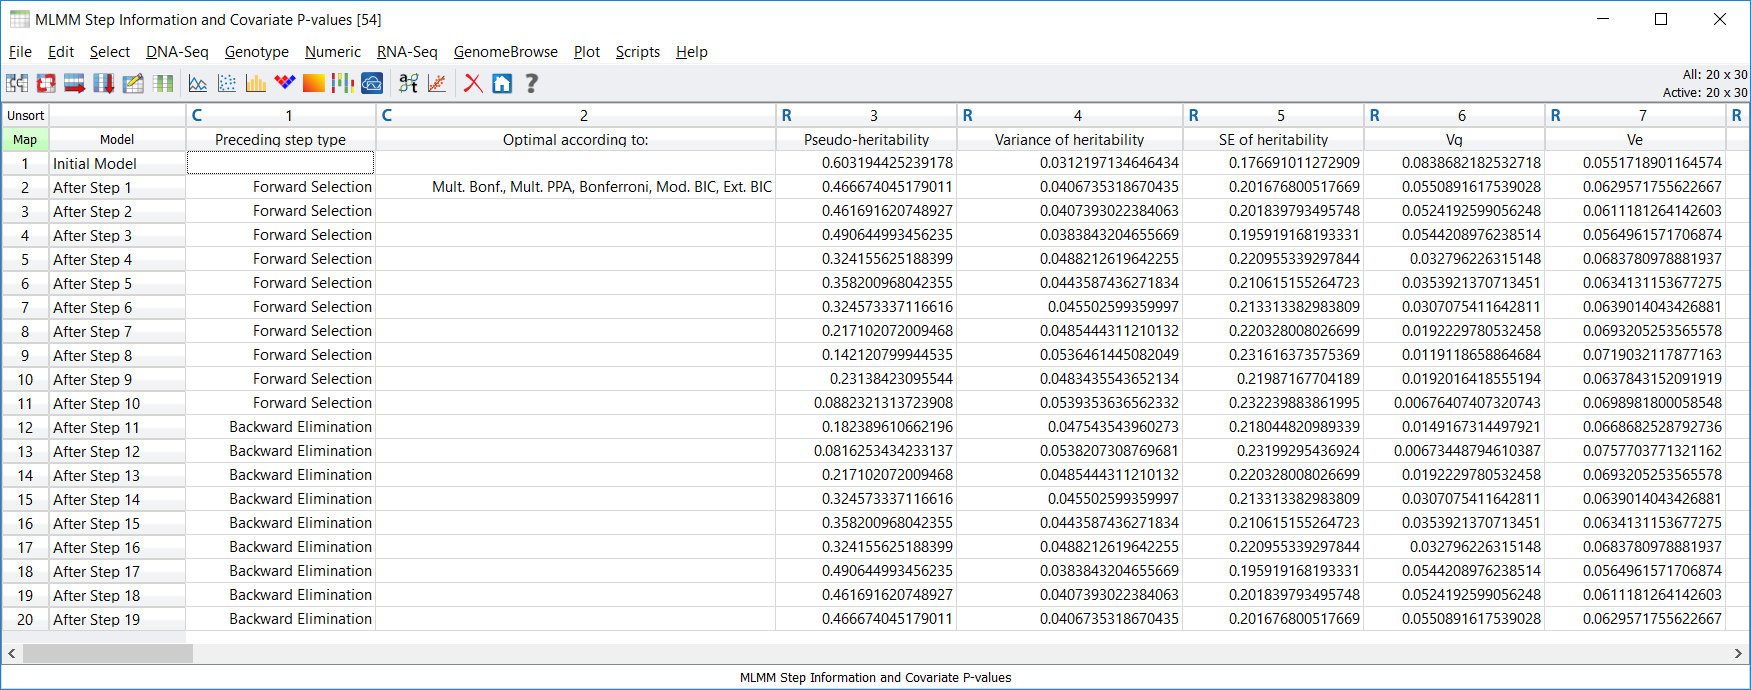 MLMM Step Information and Covariate P-values